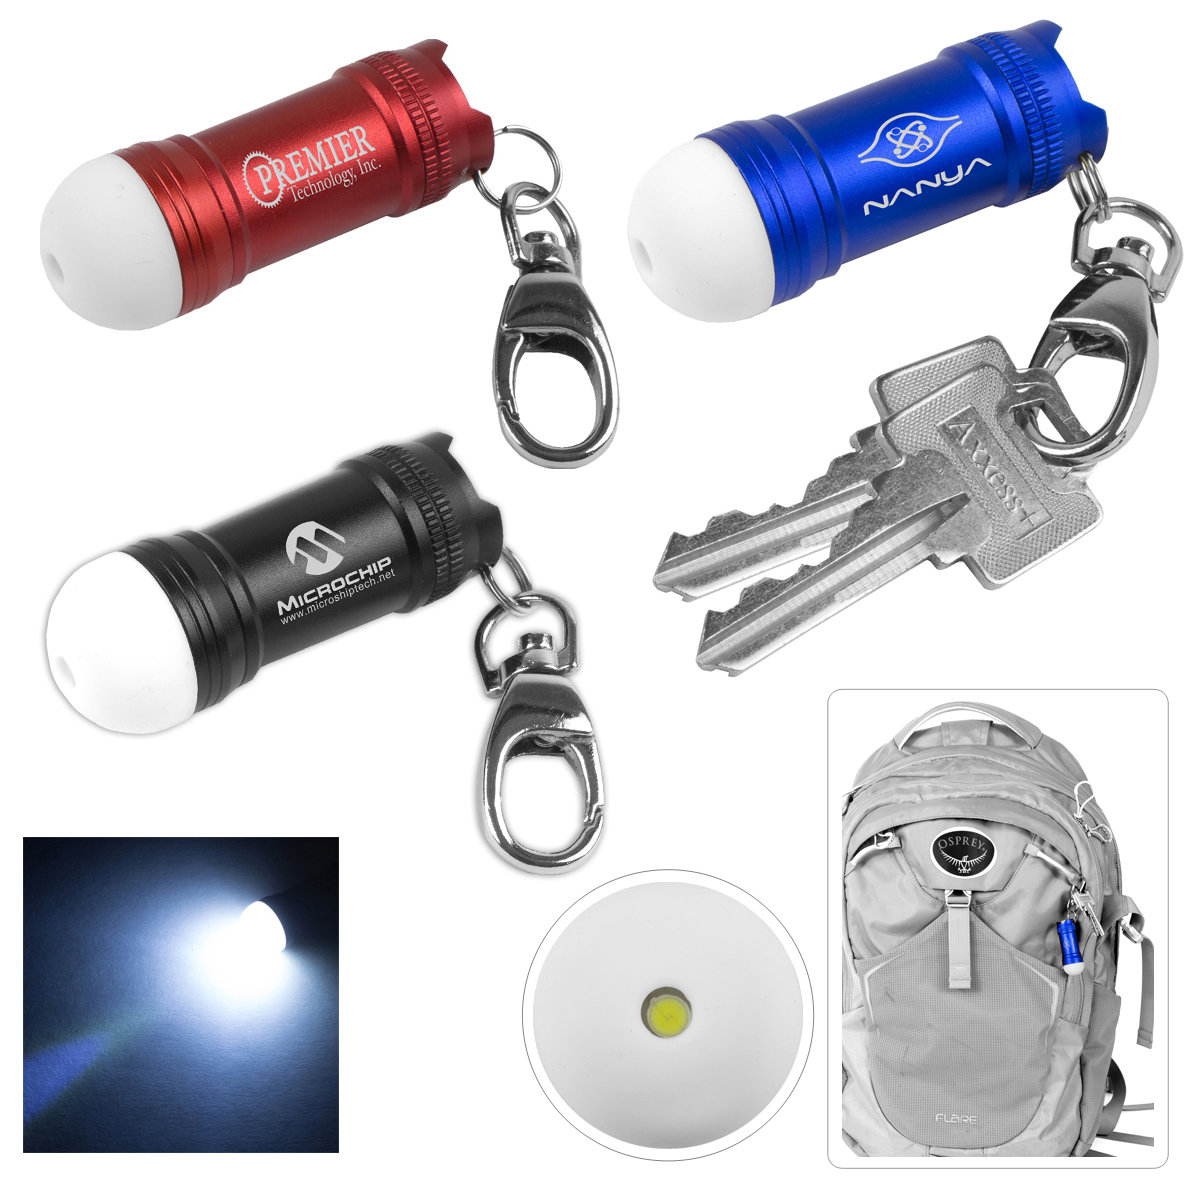 Mini Glowing Bubble Tip LED Aluminum Keychain Keylight with Lobster Clip. $2.30 each.